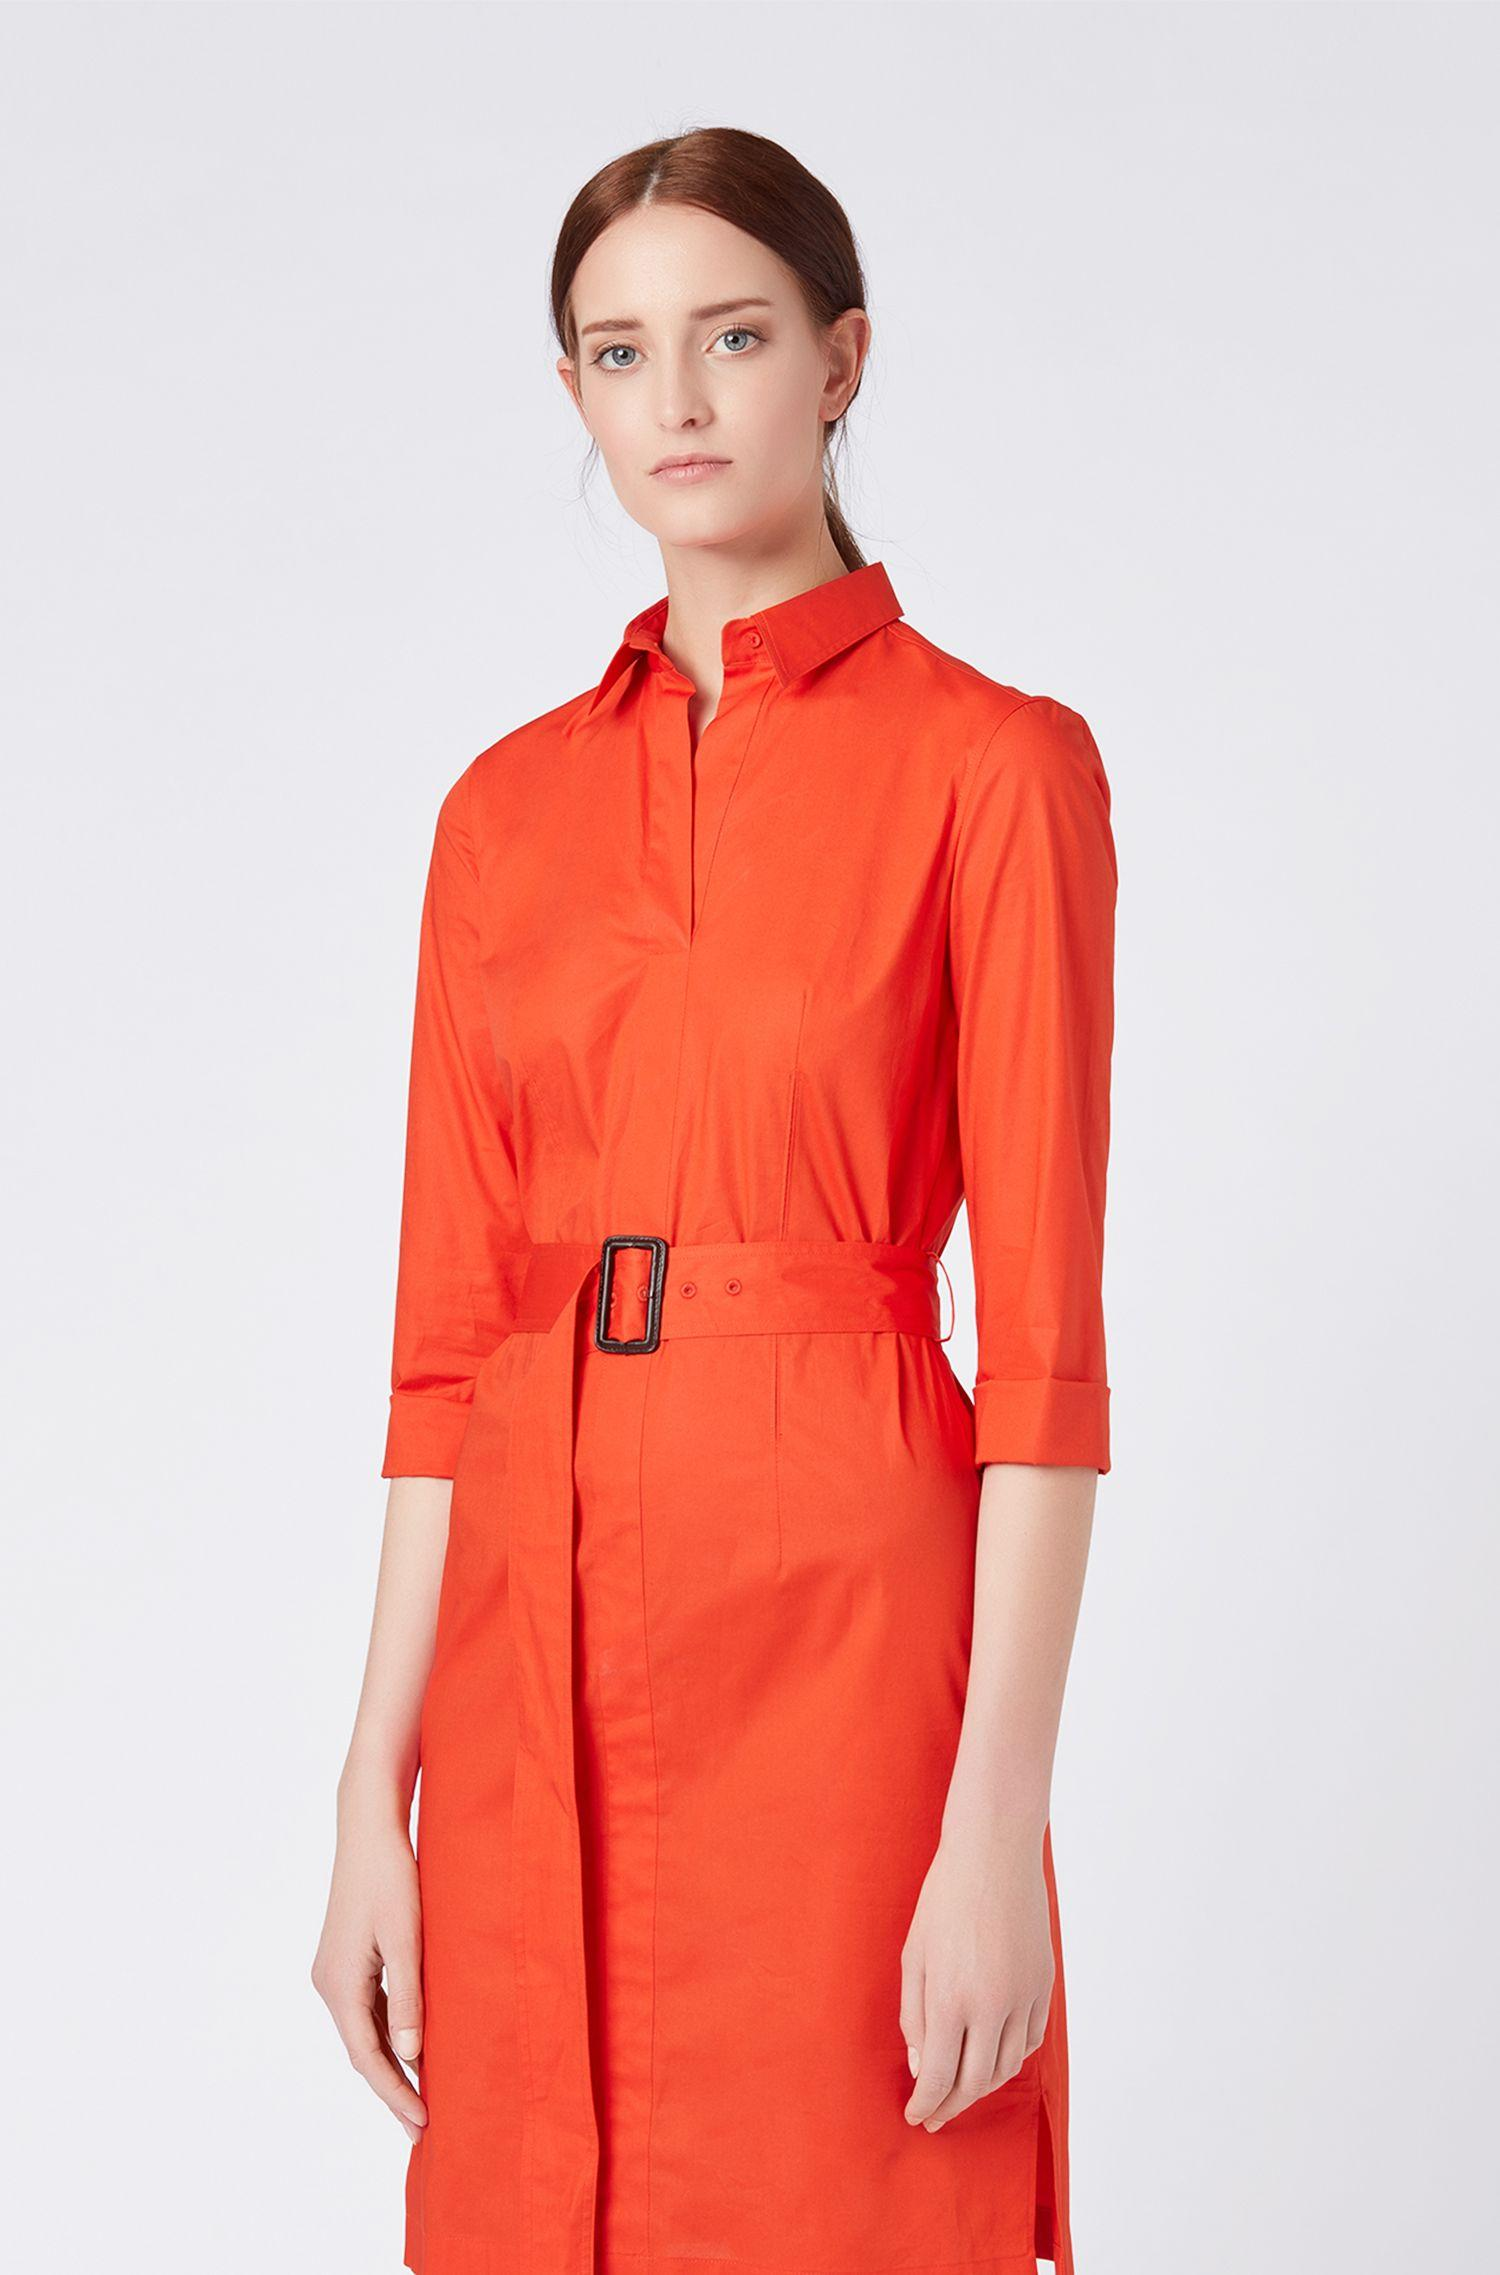 7b8fe7e02 ... Belted Shirt Dress In Stretch Cotton With Point Collar - Lyst · Visit HUGO  BOSS. Tap to visit site